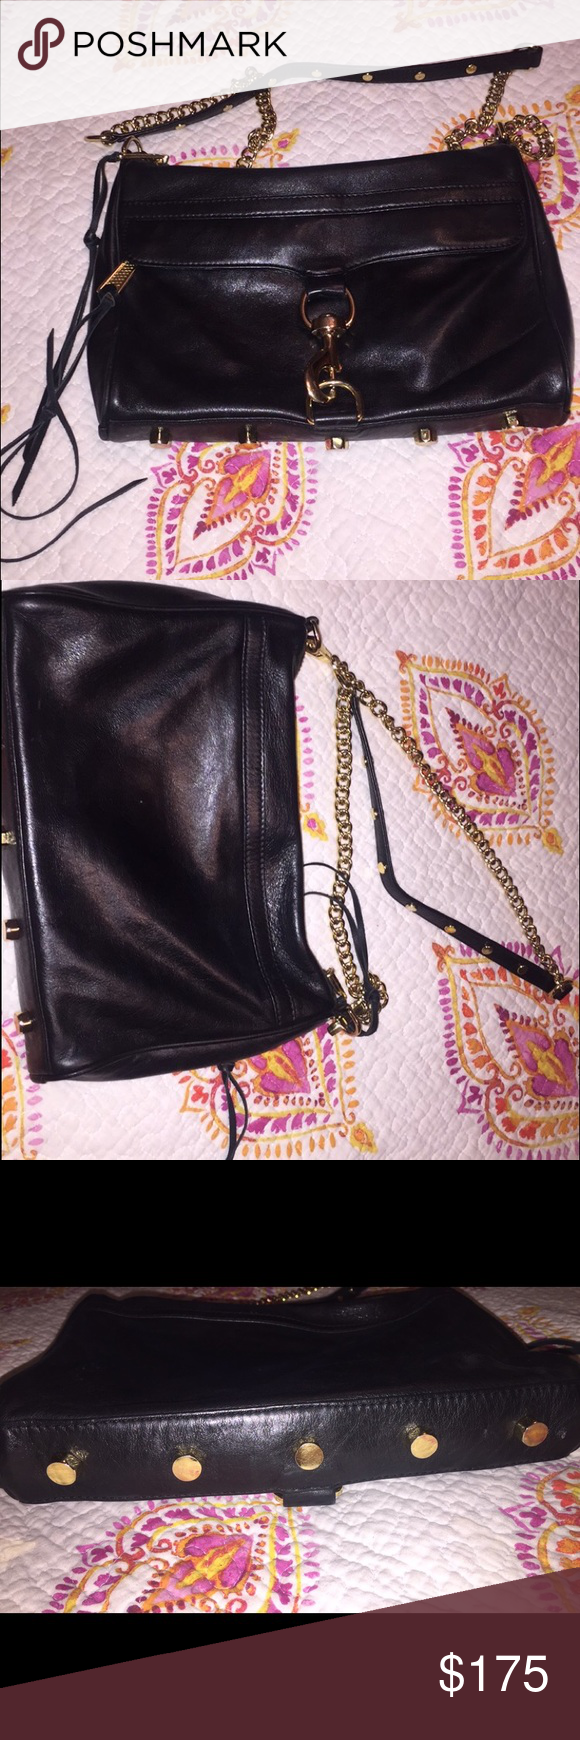 Rebecca Minkoff Mac 100% Authentic!  Purchased from Neiman Marcus in Atlanta This bag is in tip top shape! It is black in color, with gold hardware. Not one scratch on bag, not one mark. I've had it less than a year, and carried it for less than a week! It's just too small for me. I paid $299 for this bag, and am asking $175 OBO! Let me know of any more pictures or questions! Rebecca Minkoff Bags Crossbody Bags